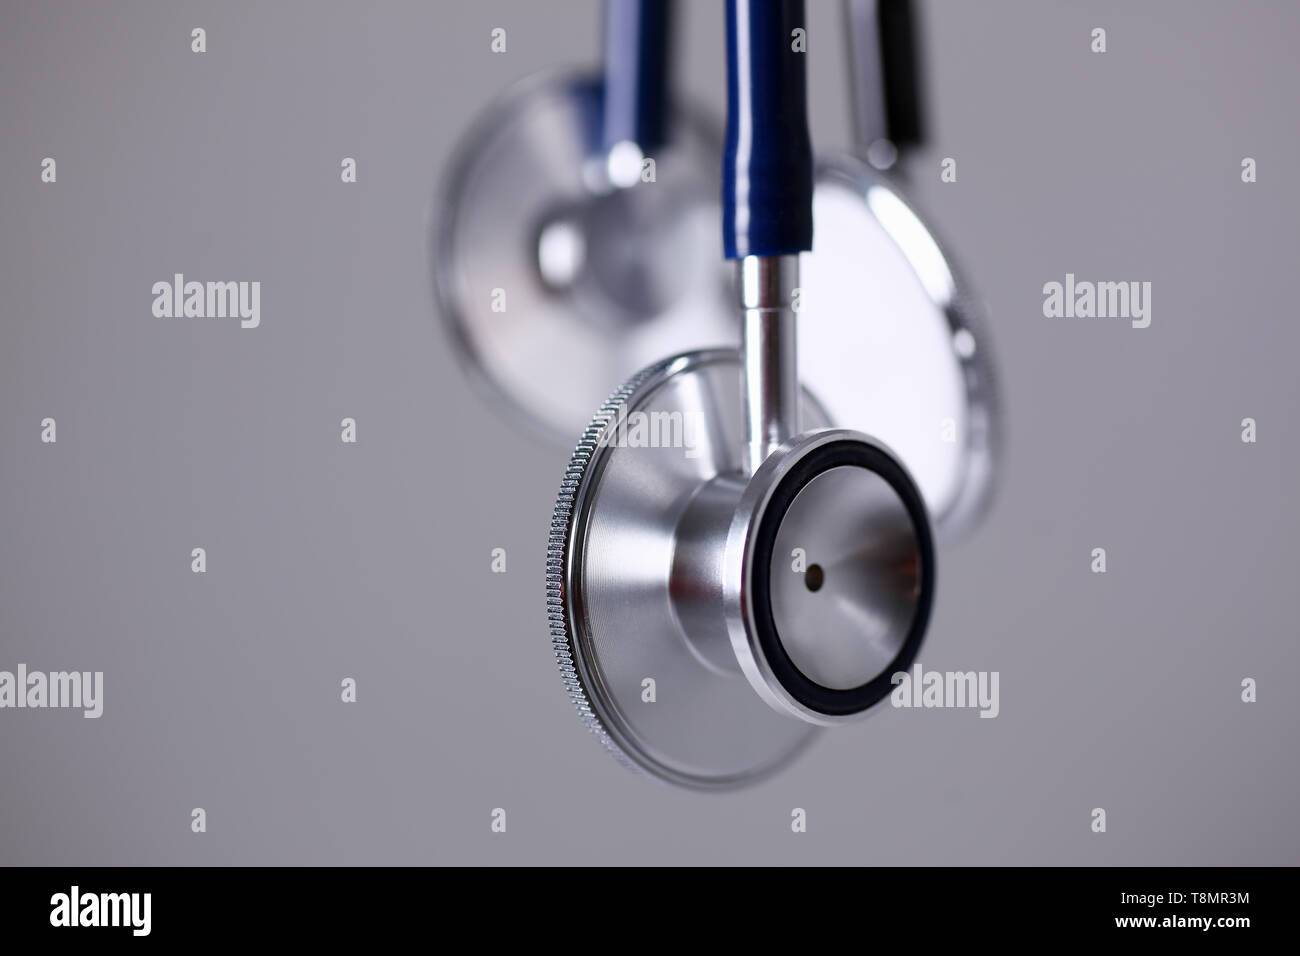 Stethoscope head lying on gray background closeup - Stock Image